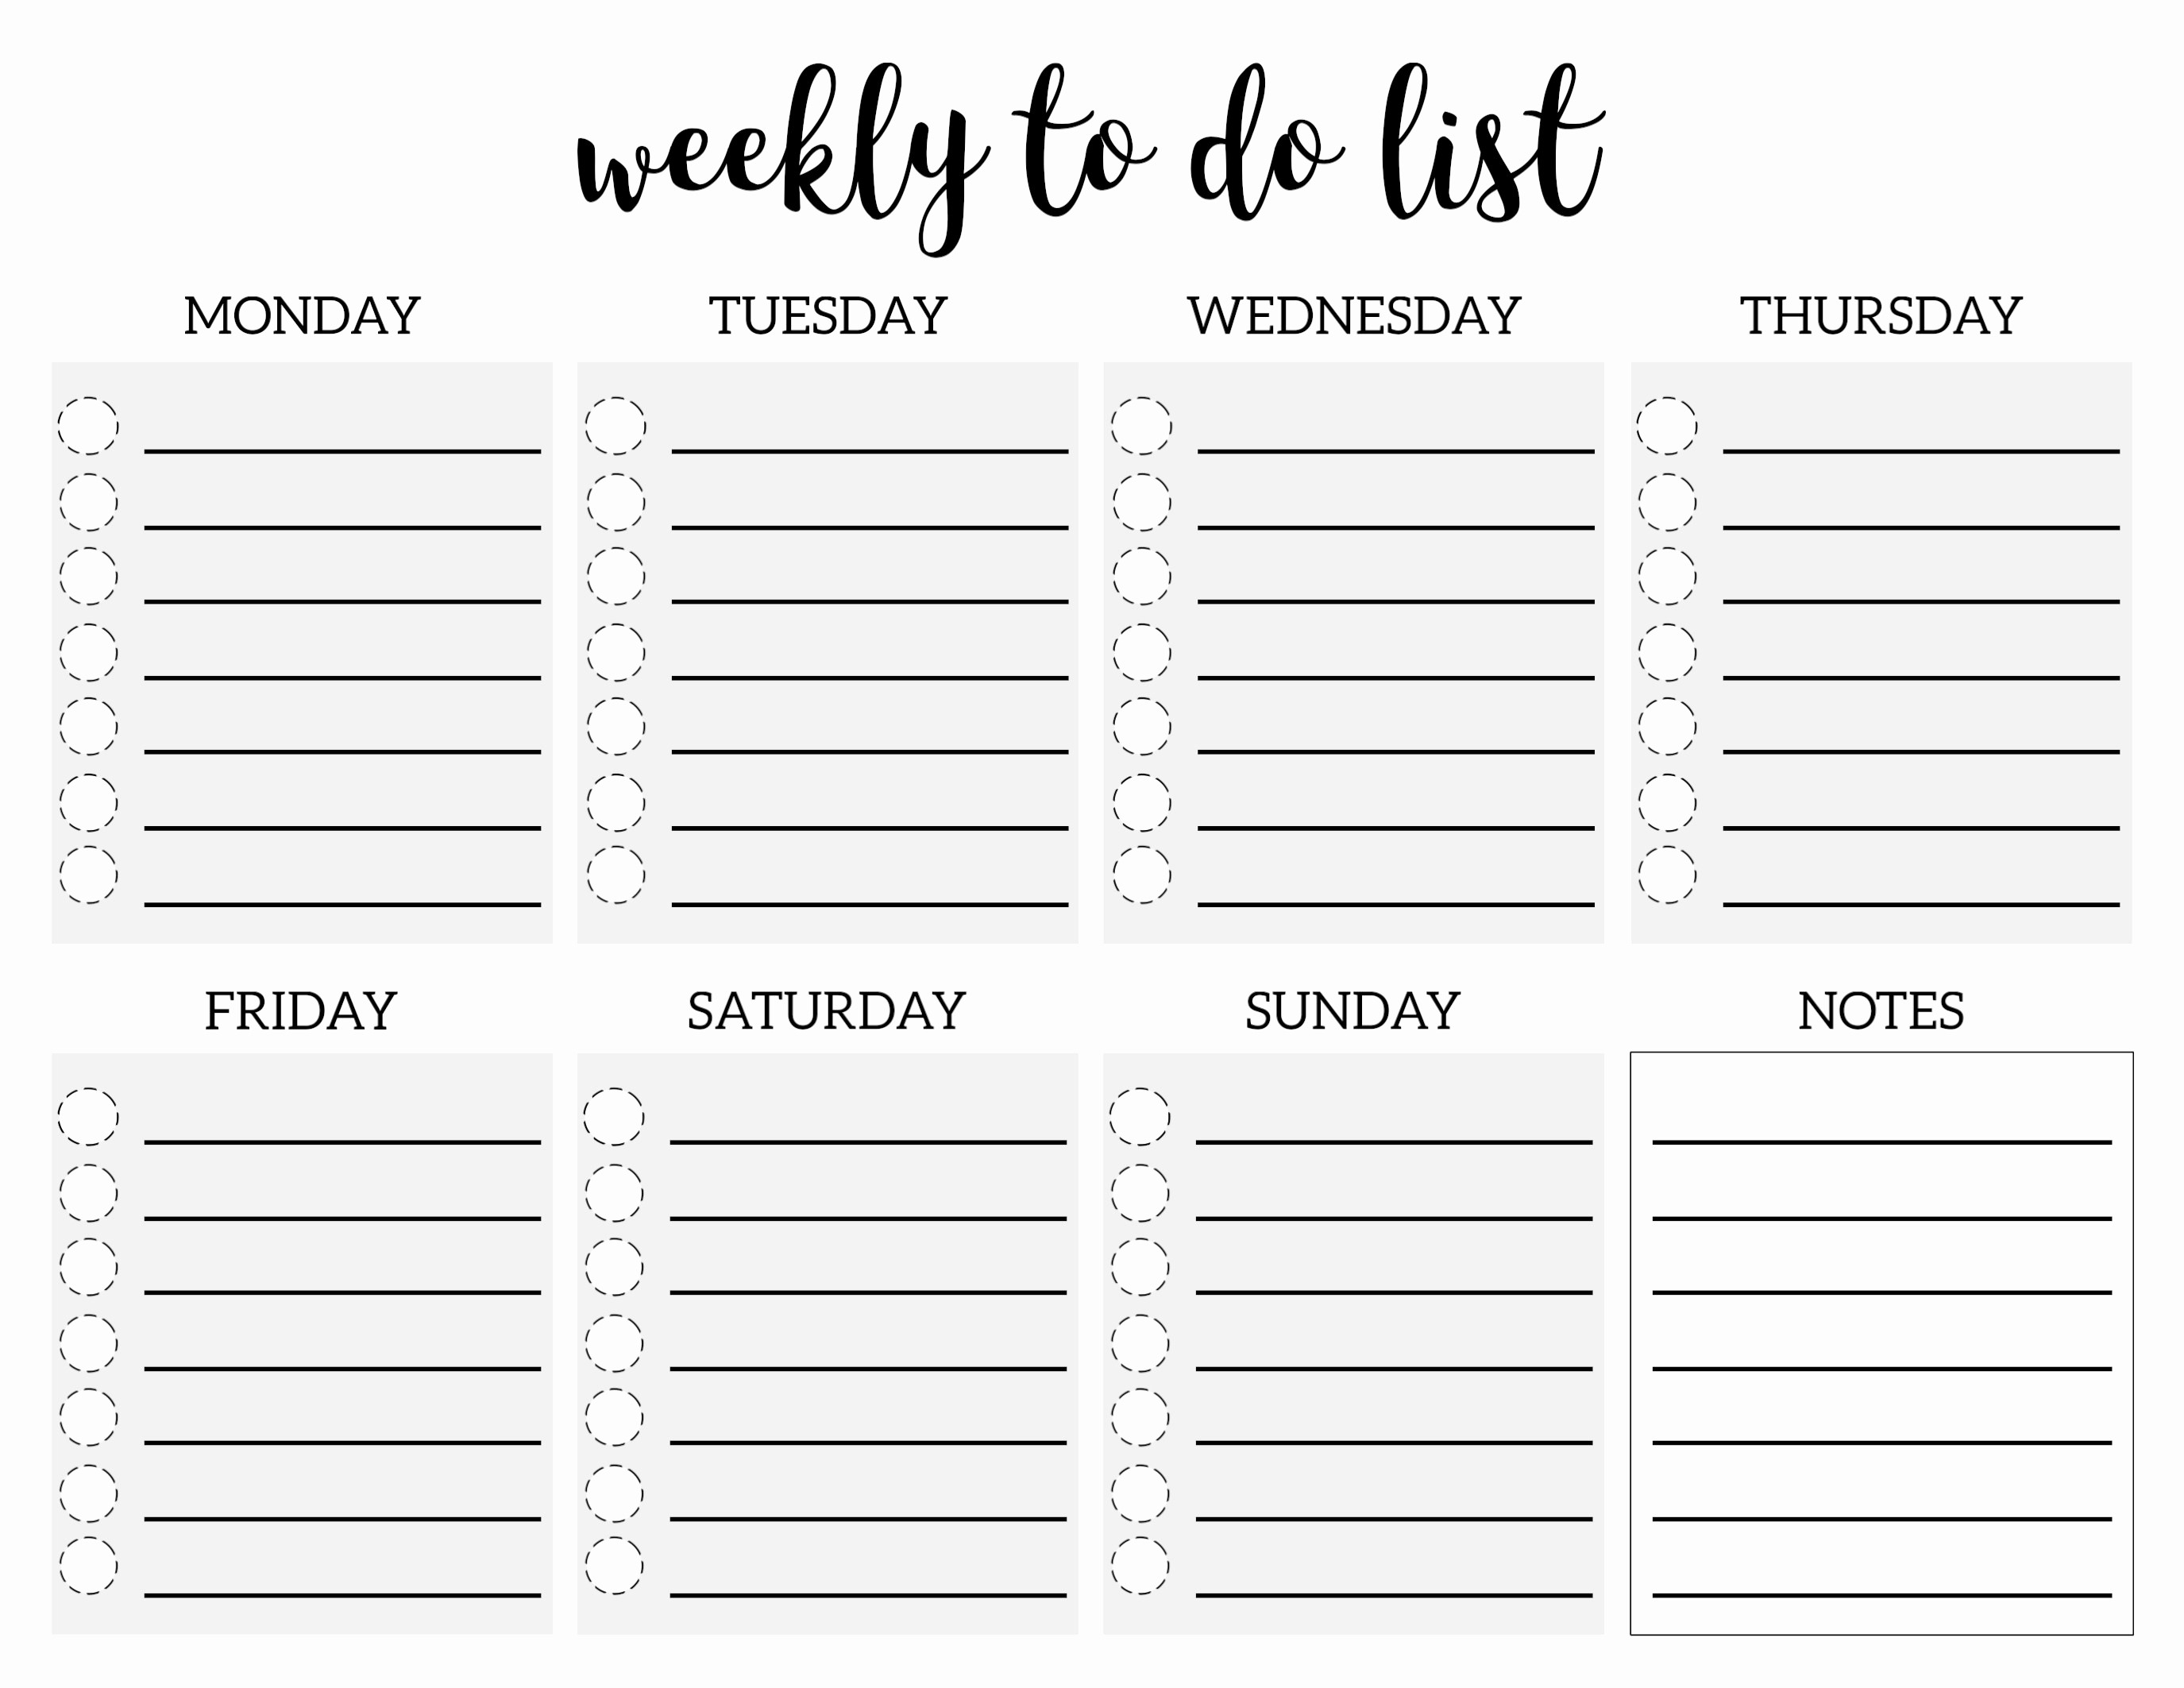 Office to Do List Template Elegant Weekly to Do List Printable Checklist Template Paper